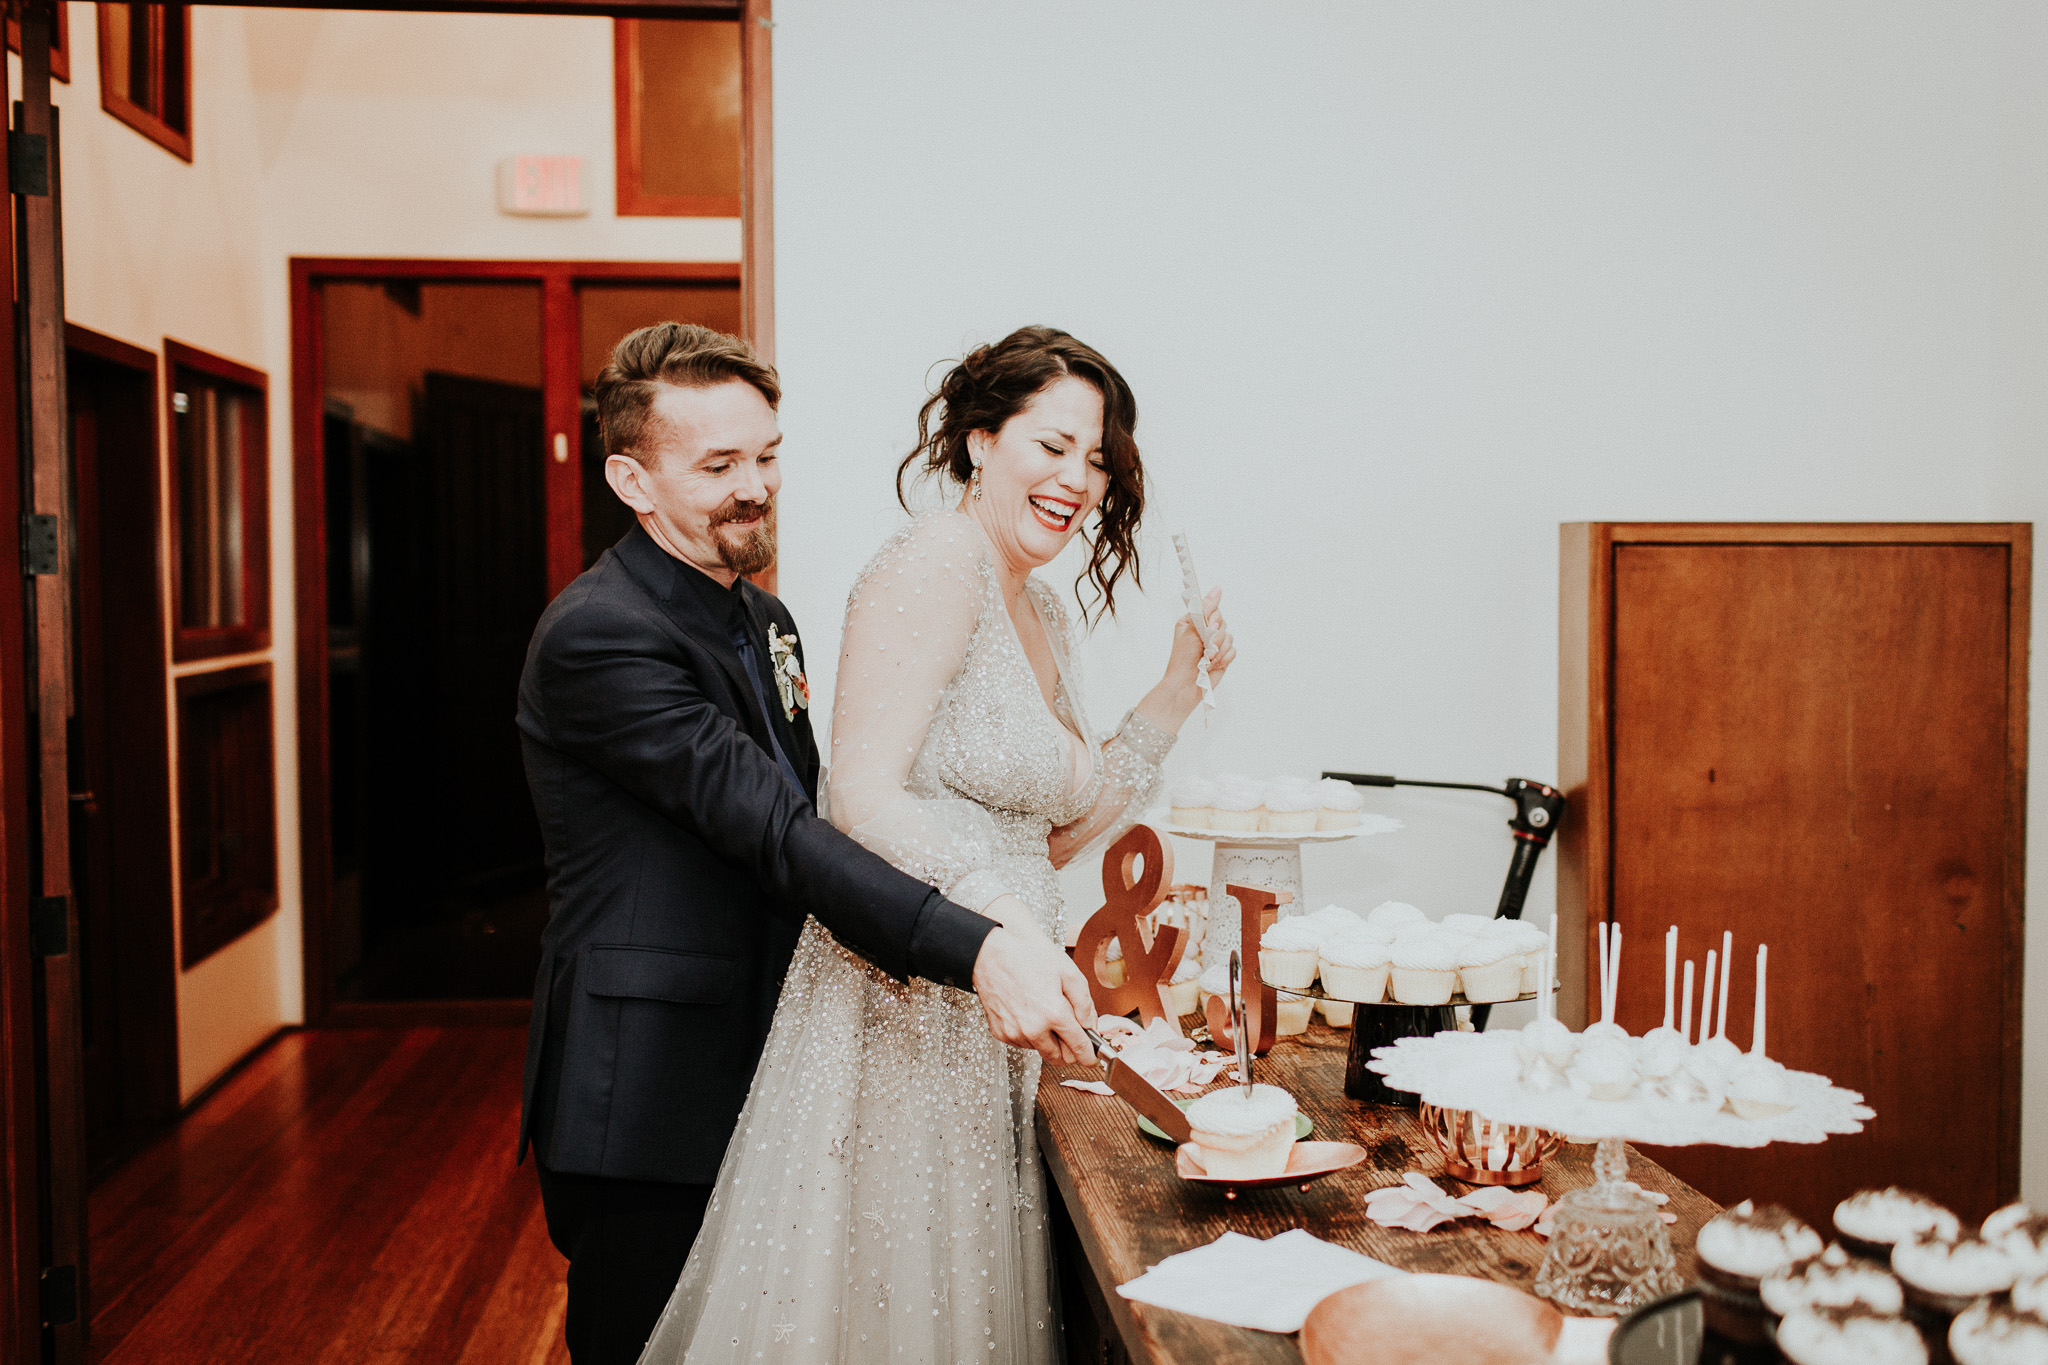 Cake Cutting at the 1909